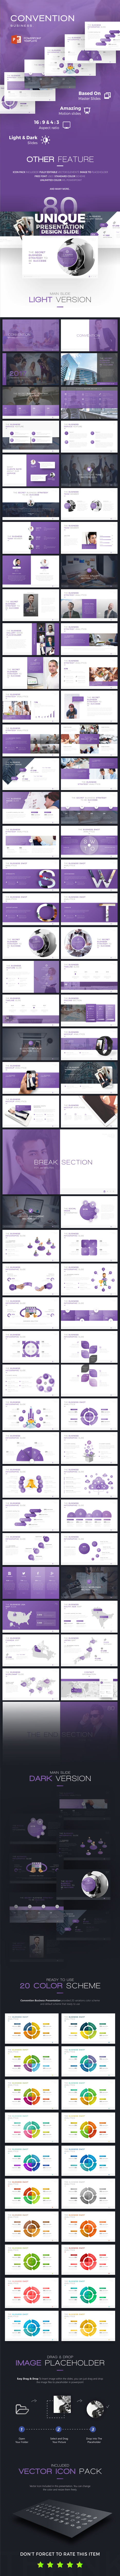 Convention Business Presentation - Business PowerPoint Templates